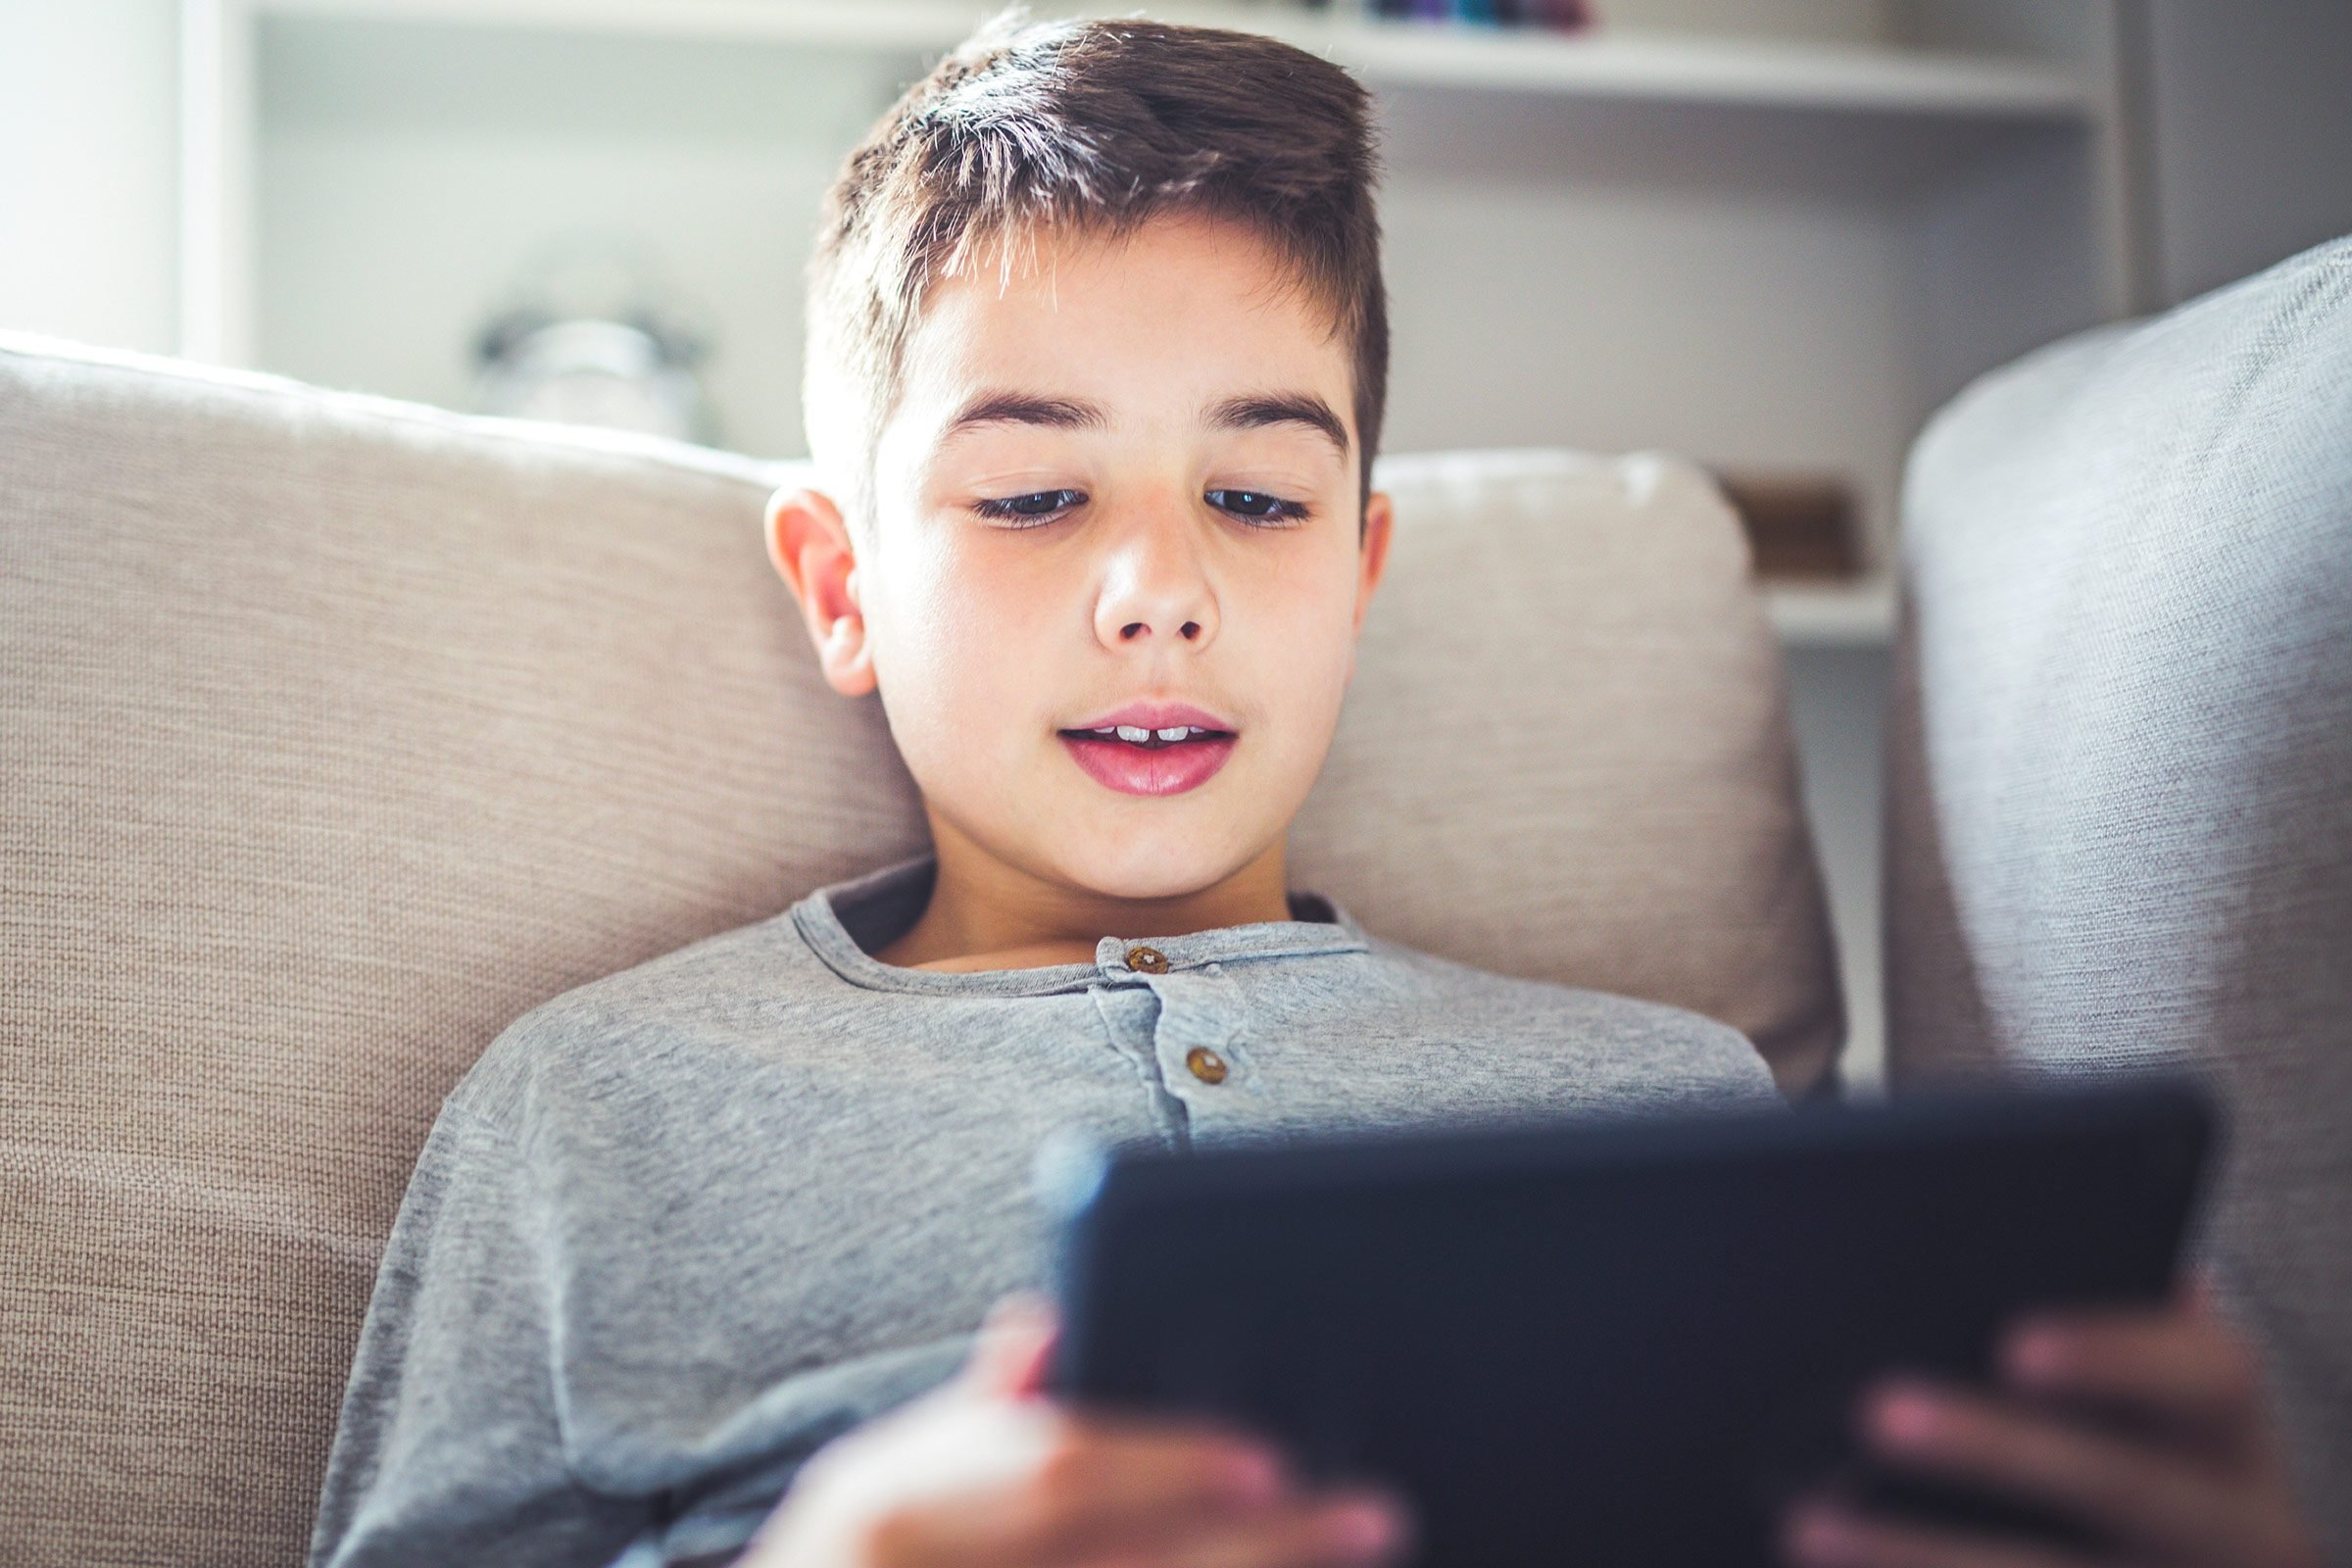 Technology has changed kids' behavior (for the worse)